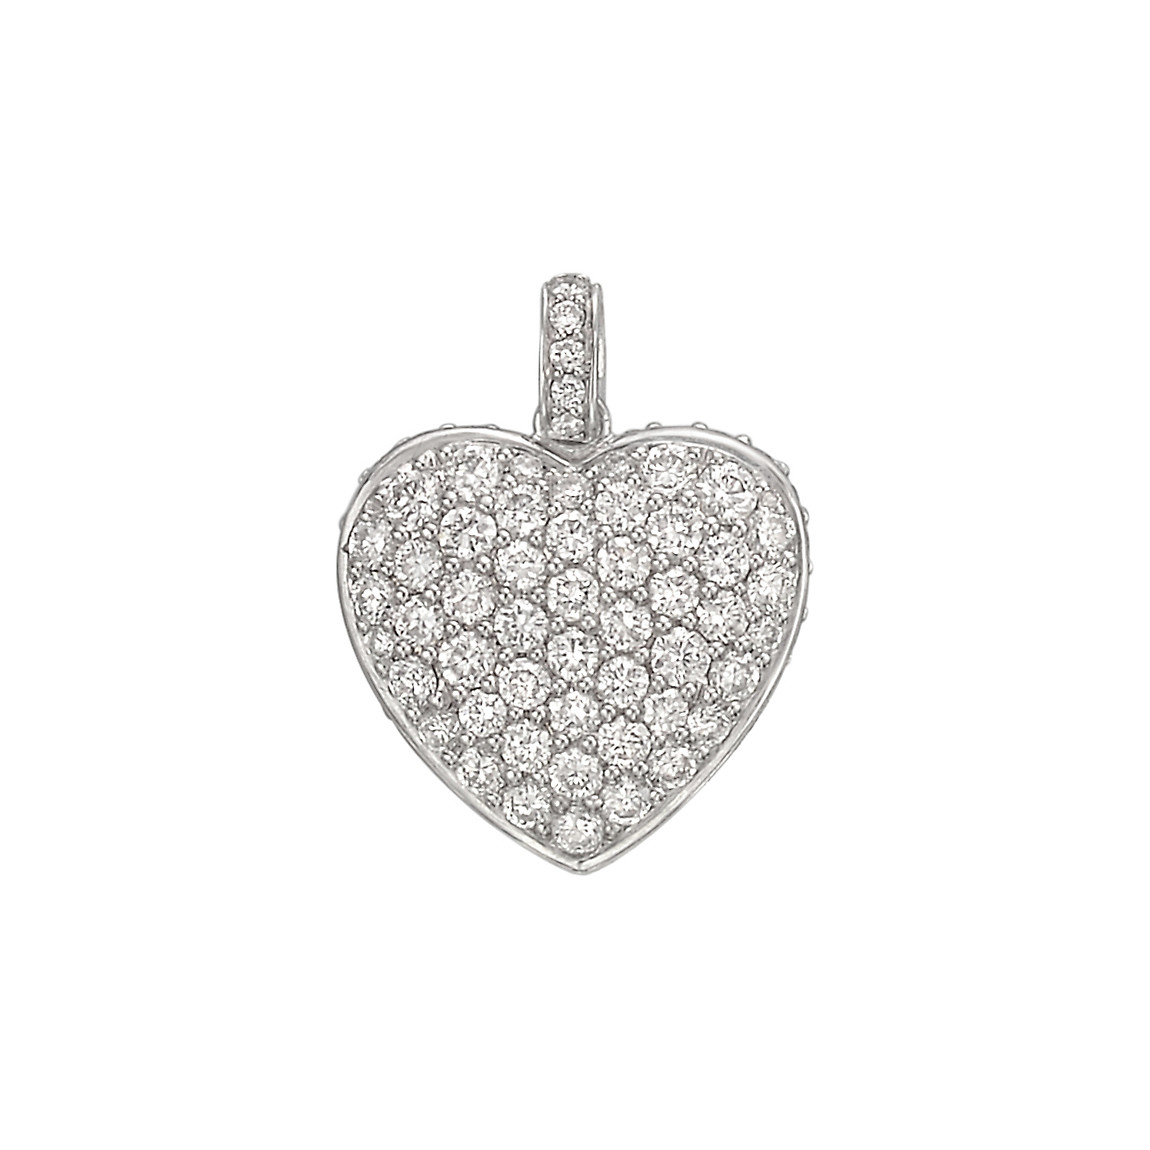 18k White Gold & Pavé Diamond Heart Pendant